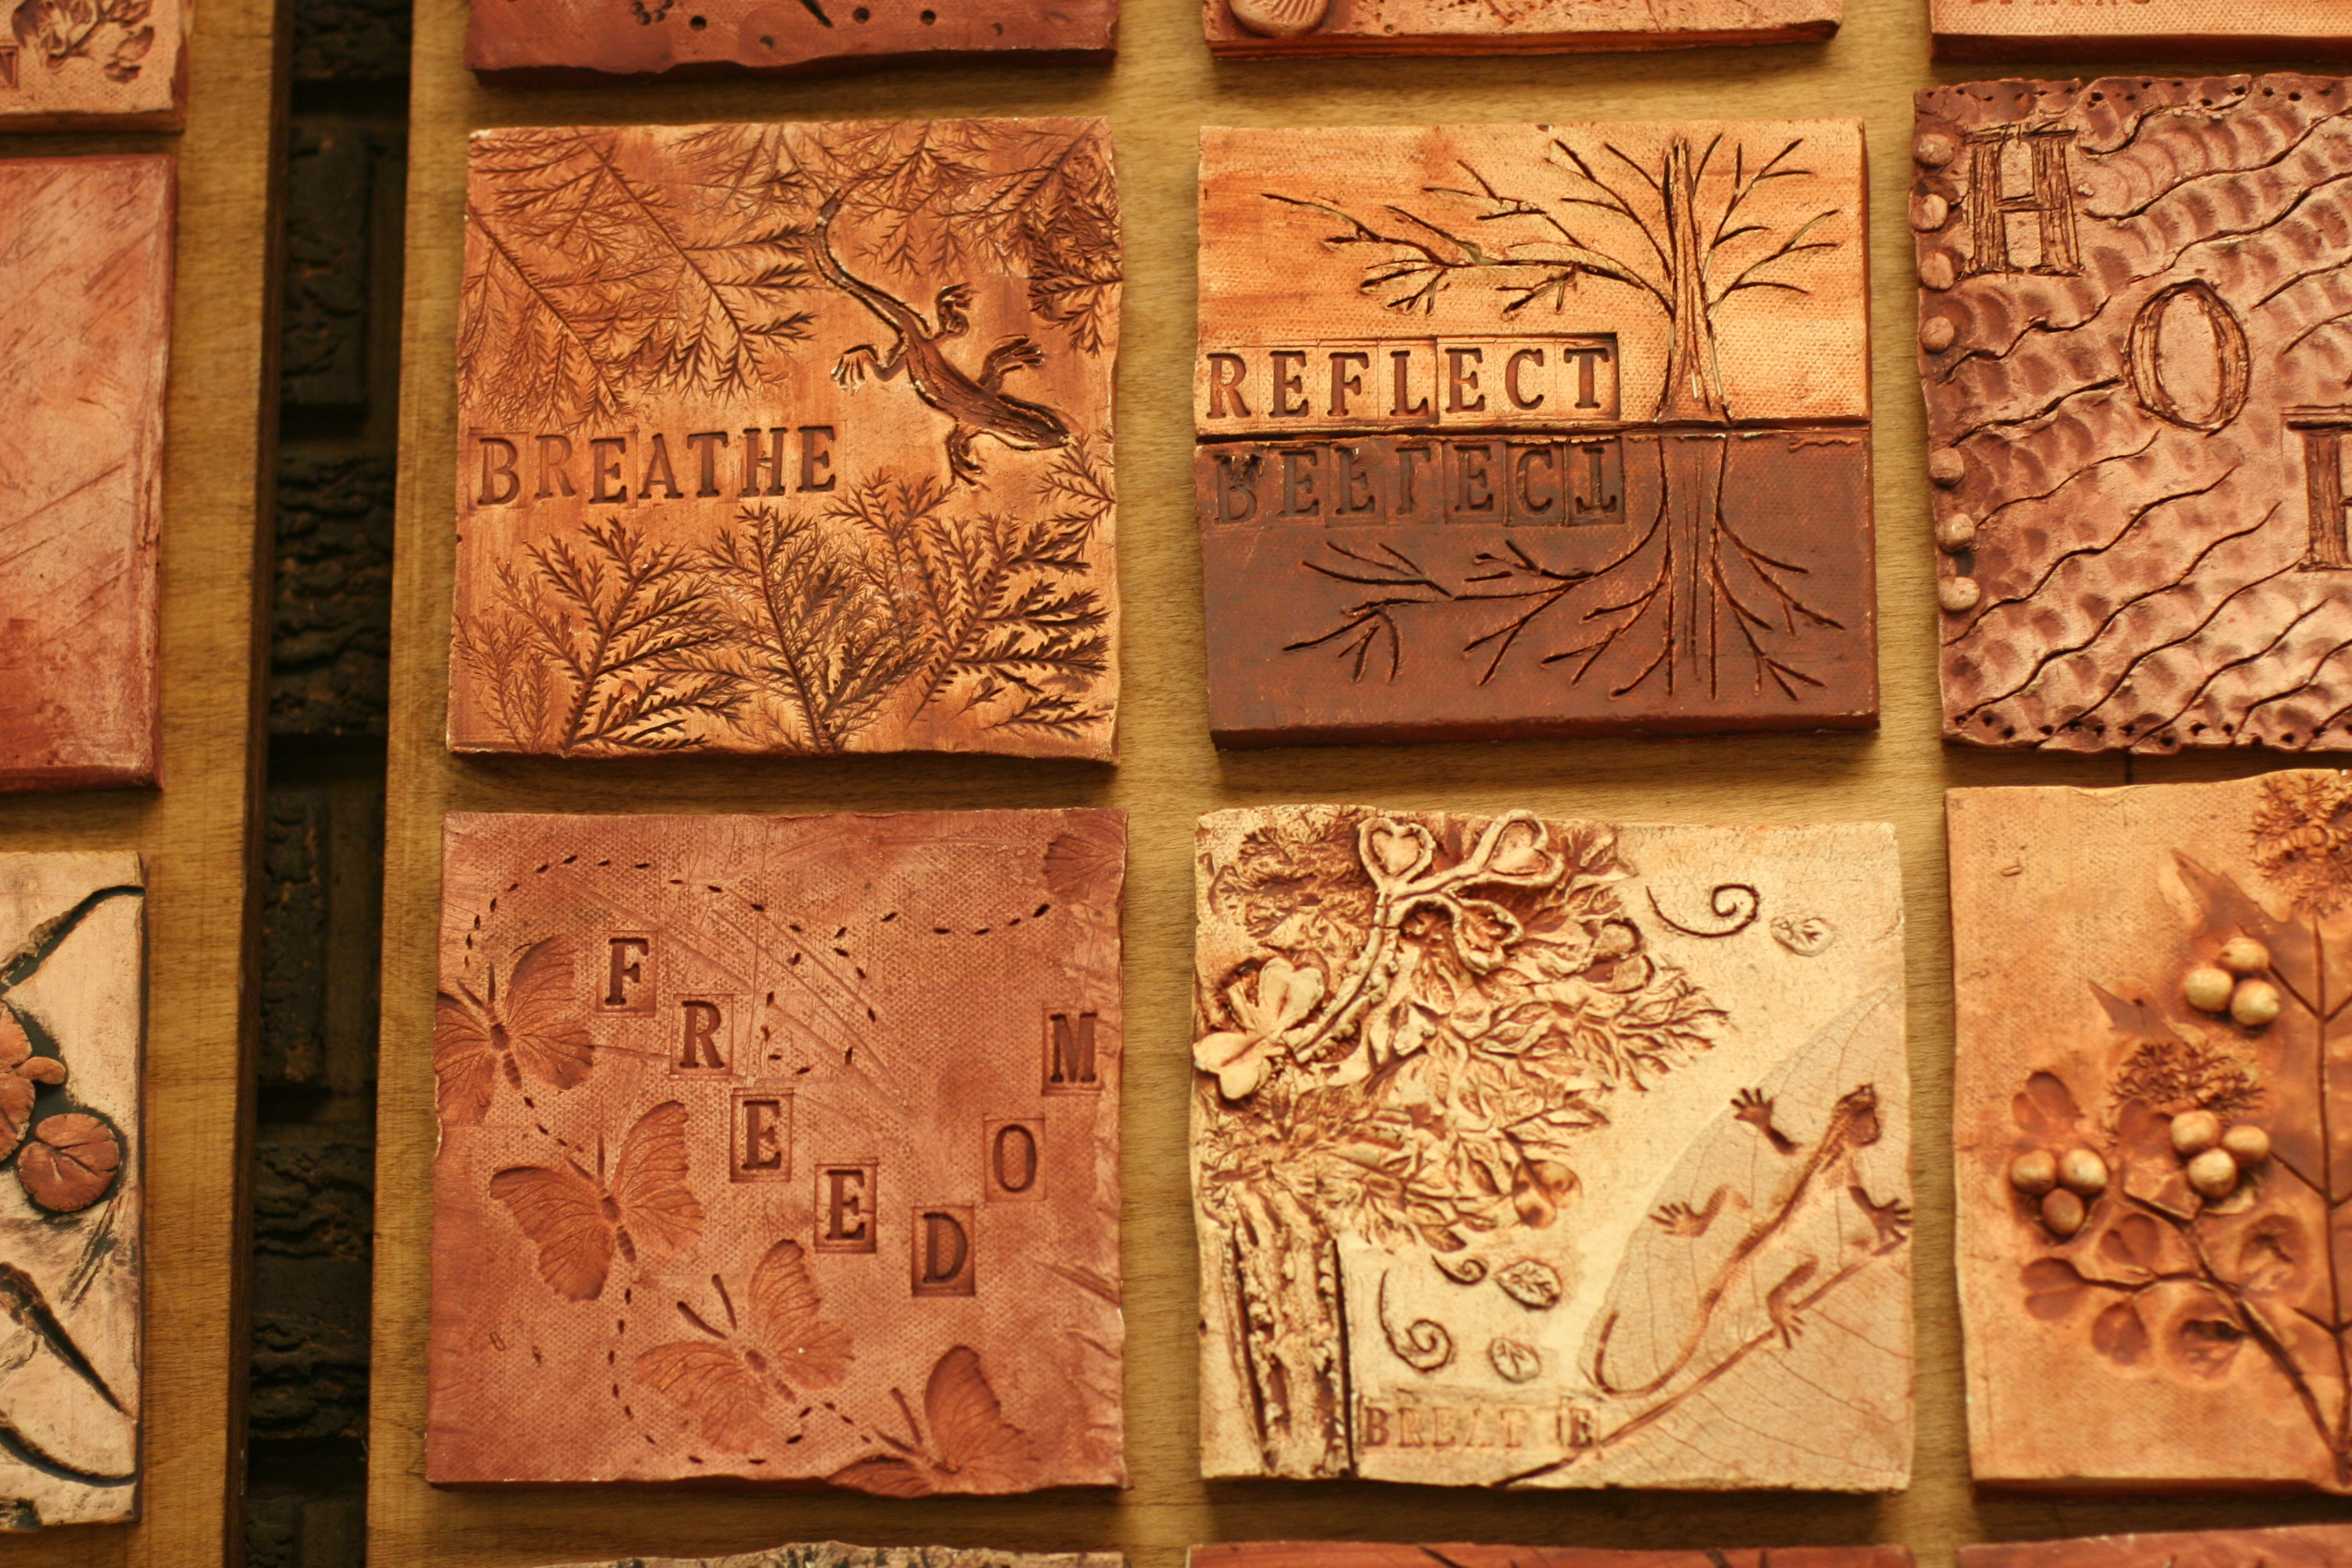 Ese ceramic tiles environmental and sustainability education art2 art3 art4 art5 dailygadgetfo Choice Image